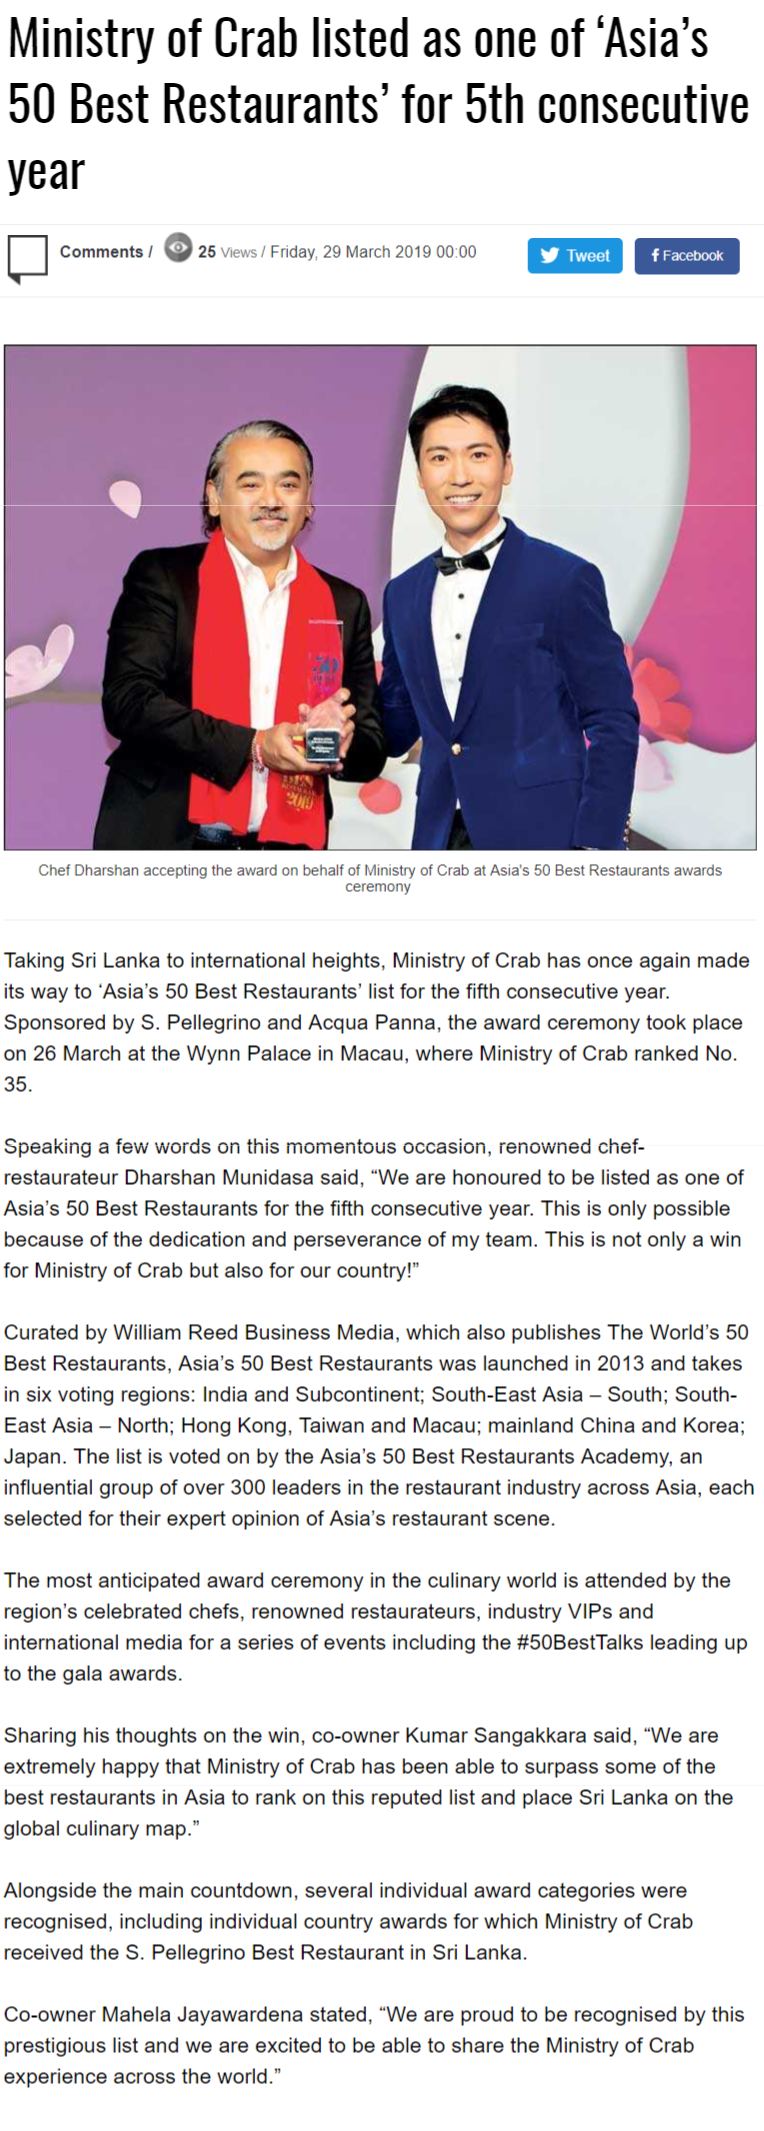 Ministry Of Crab Listed As One Of 'Asia's 50 Best Restaurants' For 5th Consecutive Year